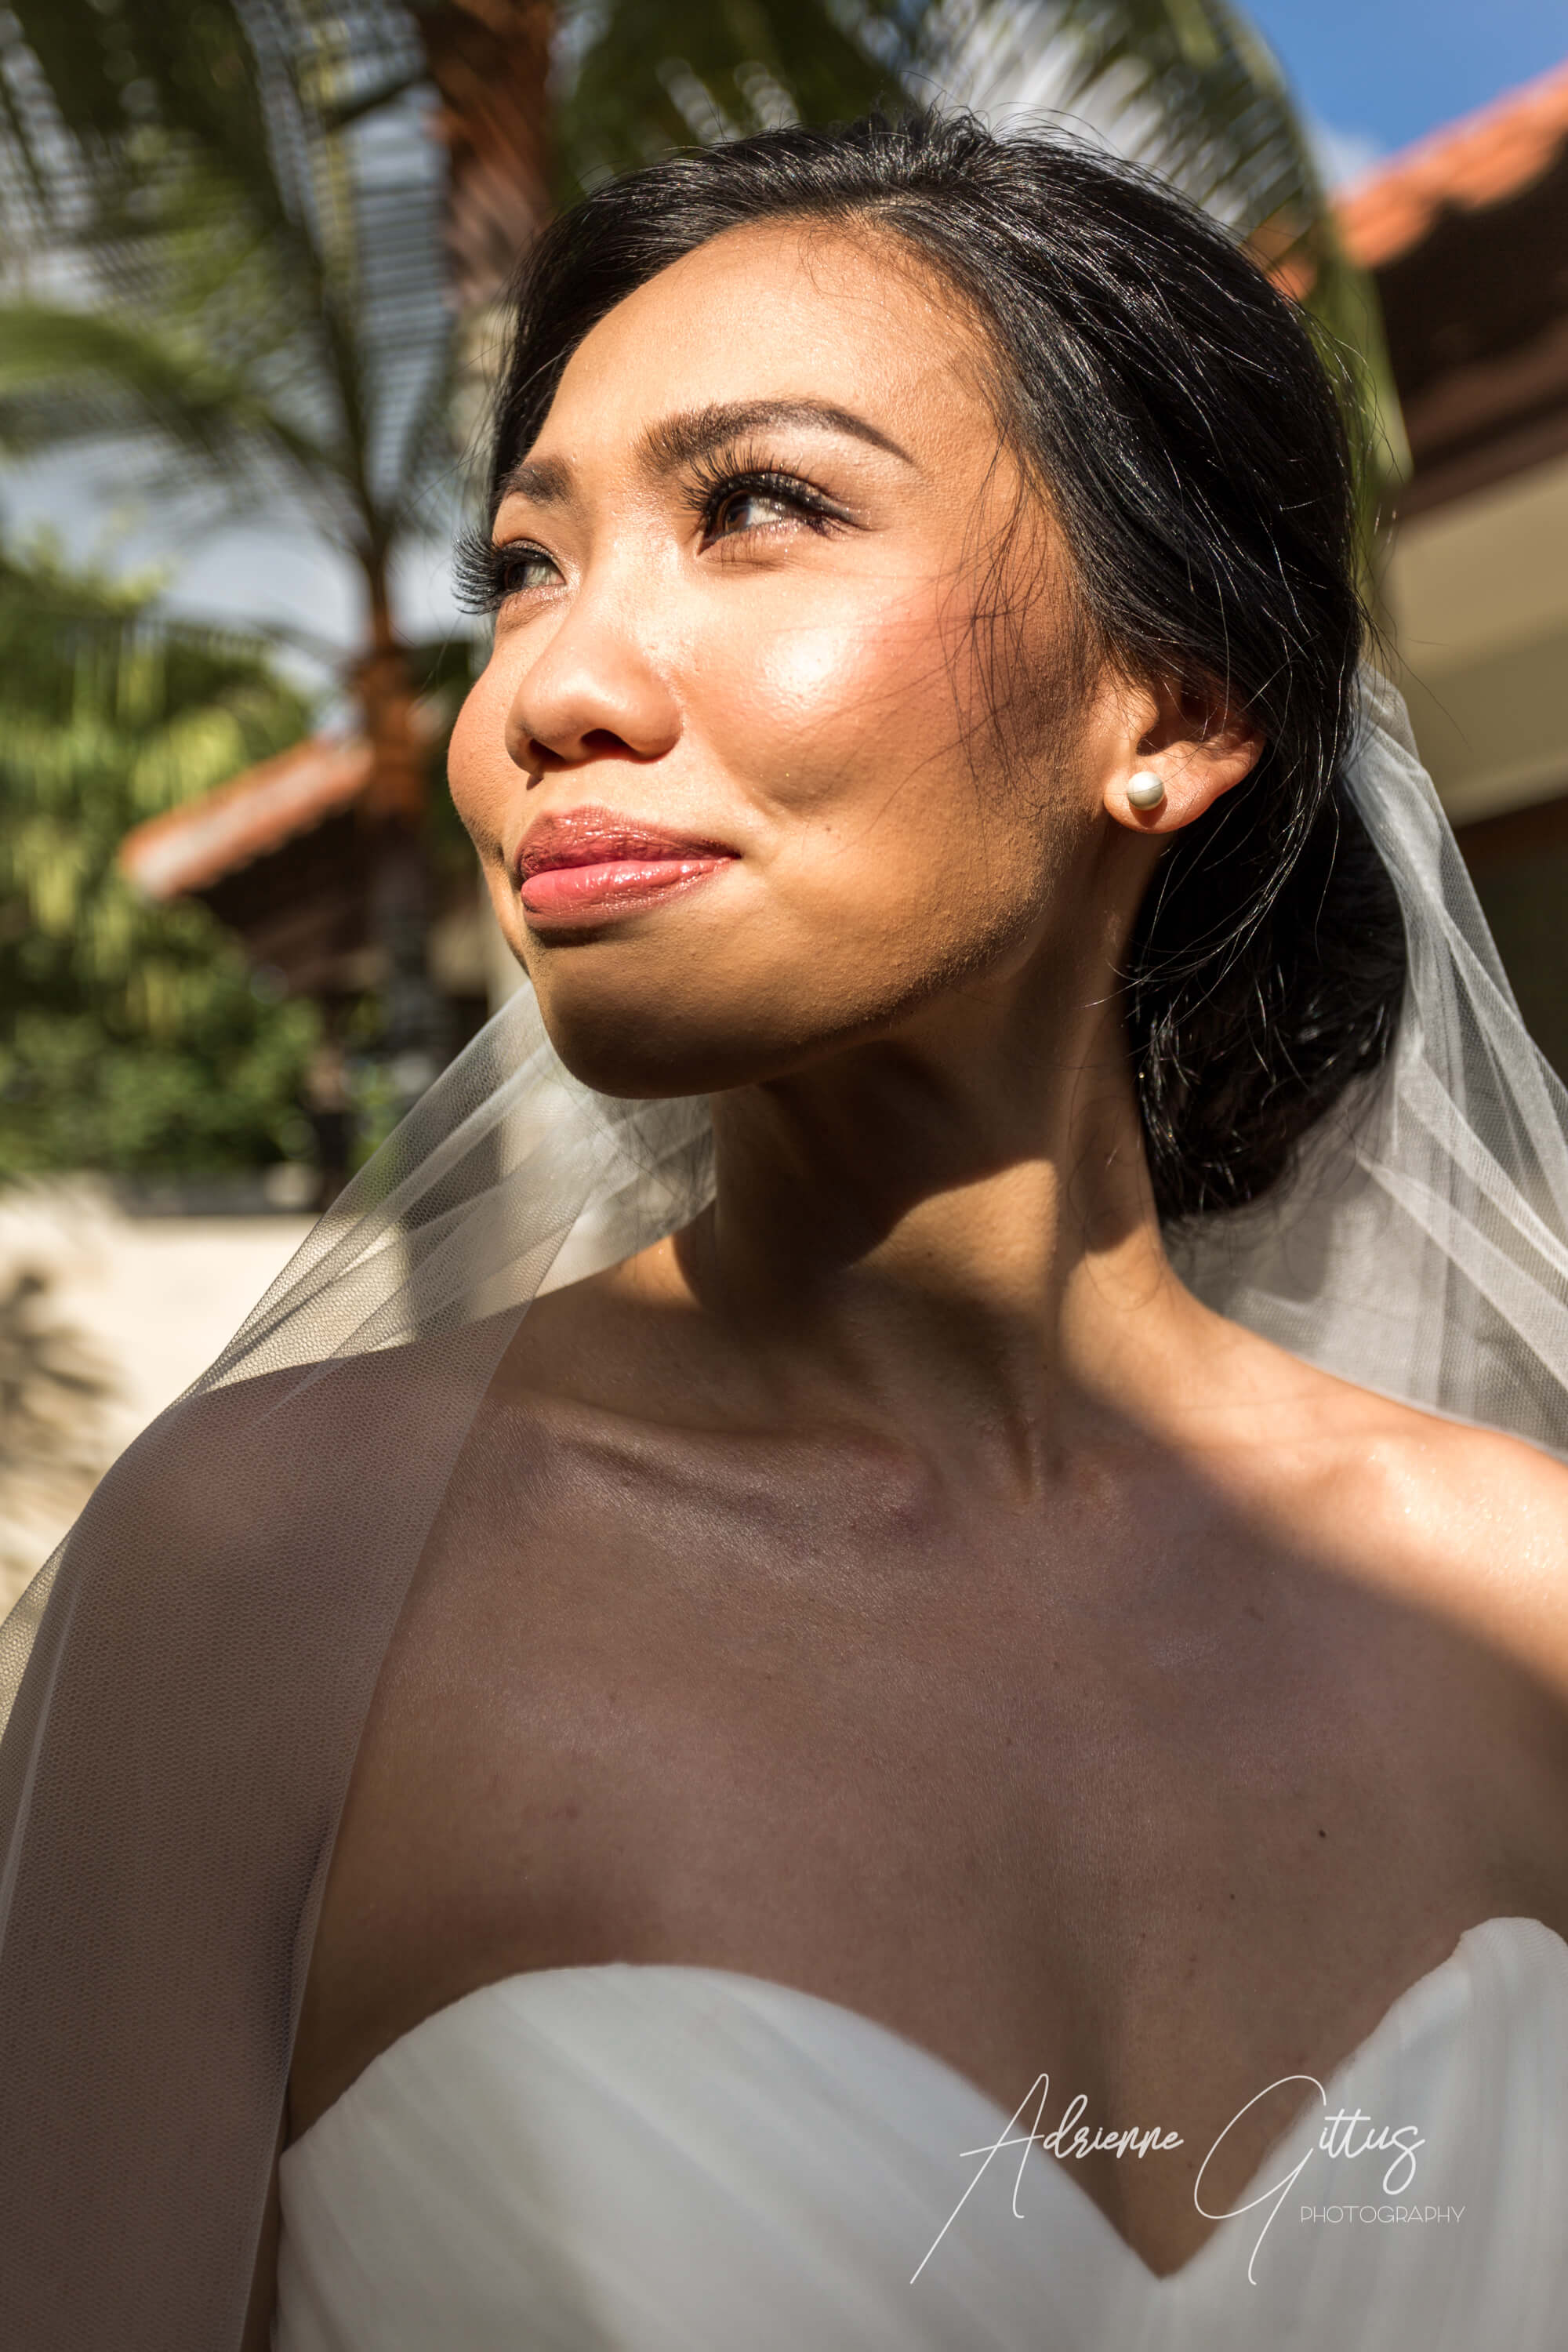 Portrait of a smiling bride in a wedding dress